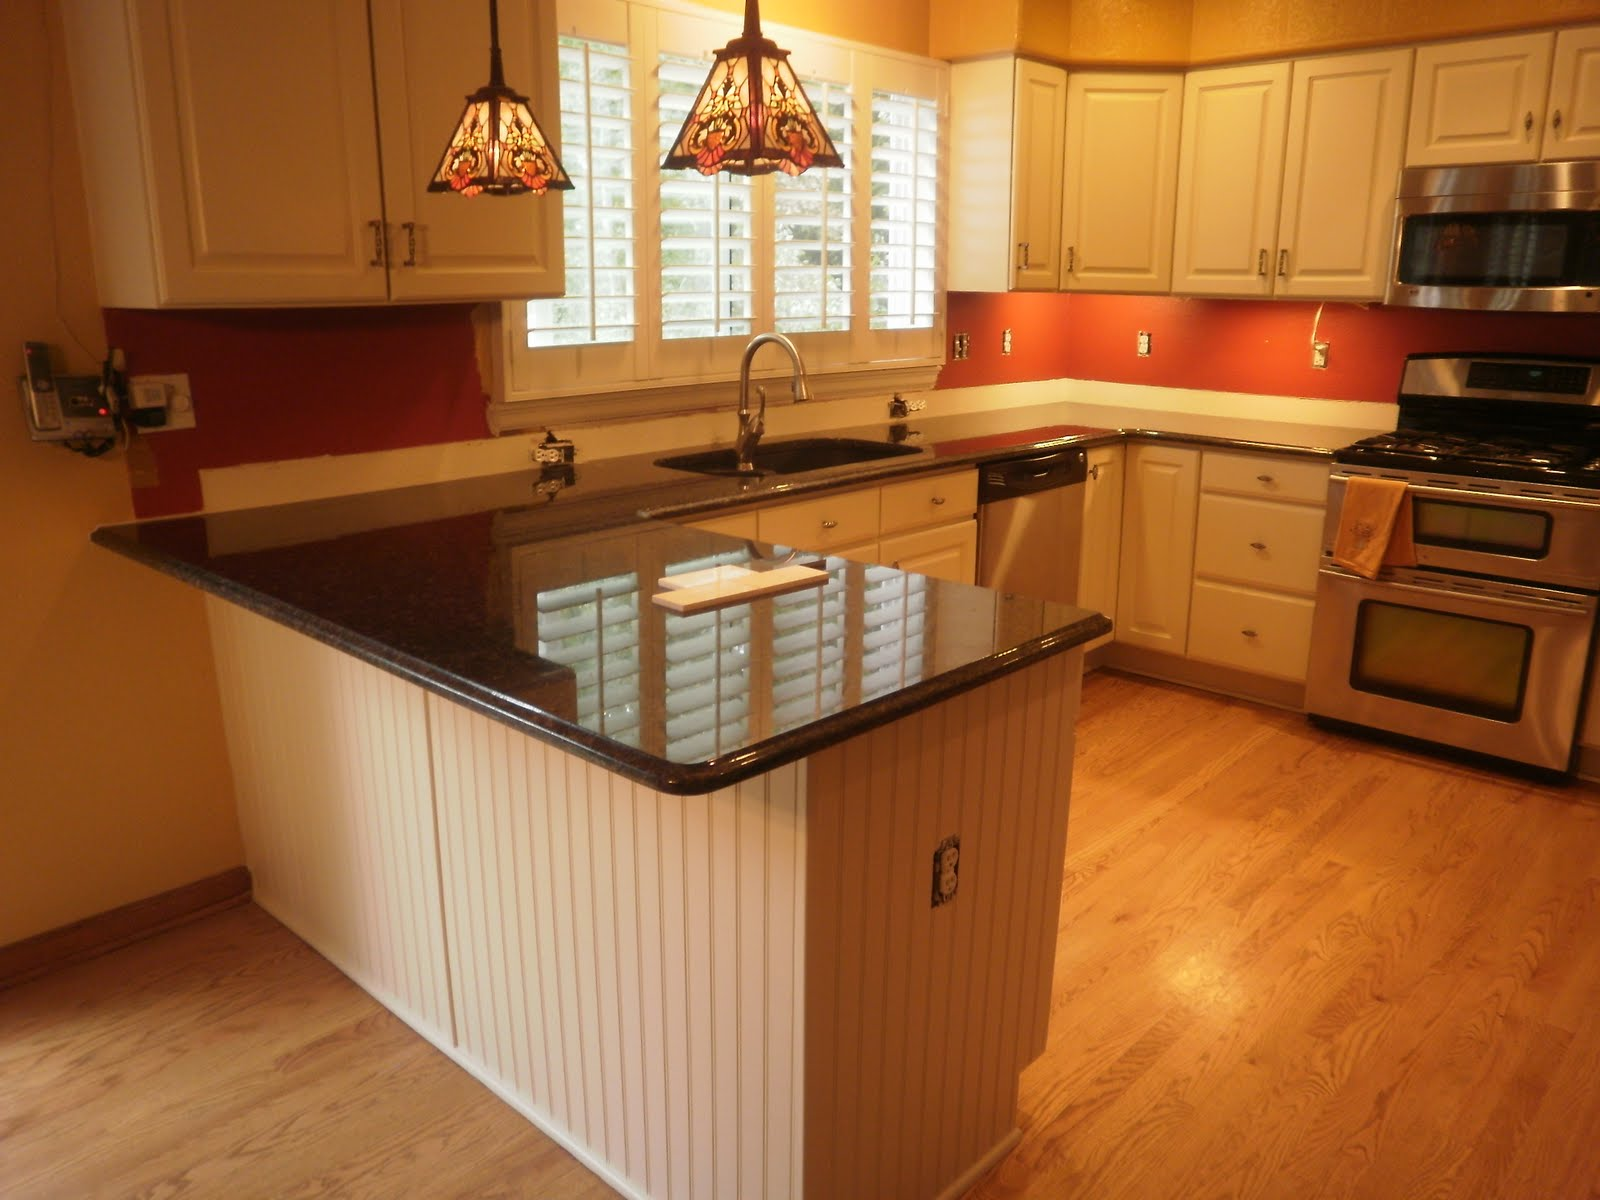 Granite Countertops And White Cabinets By Colorado Cabinet Coatings